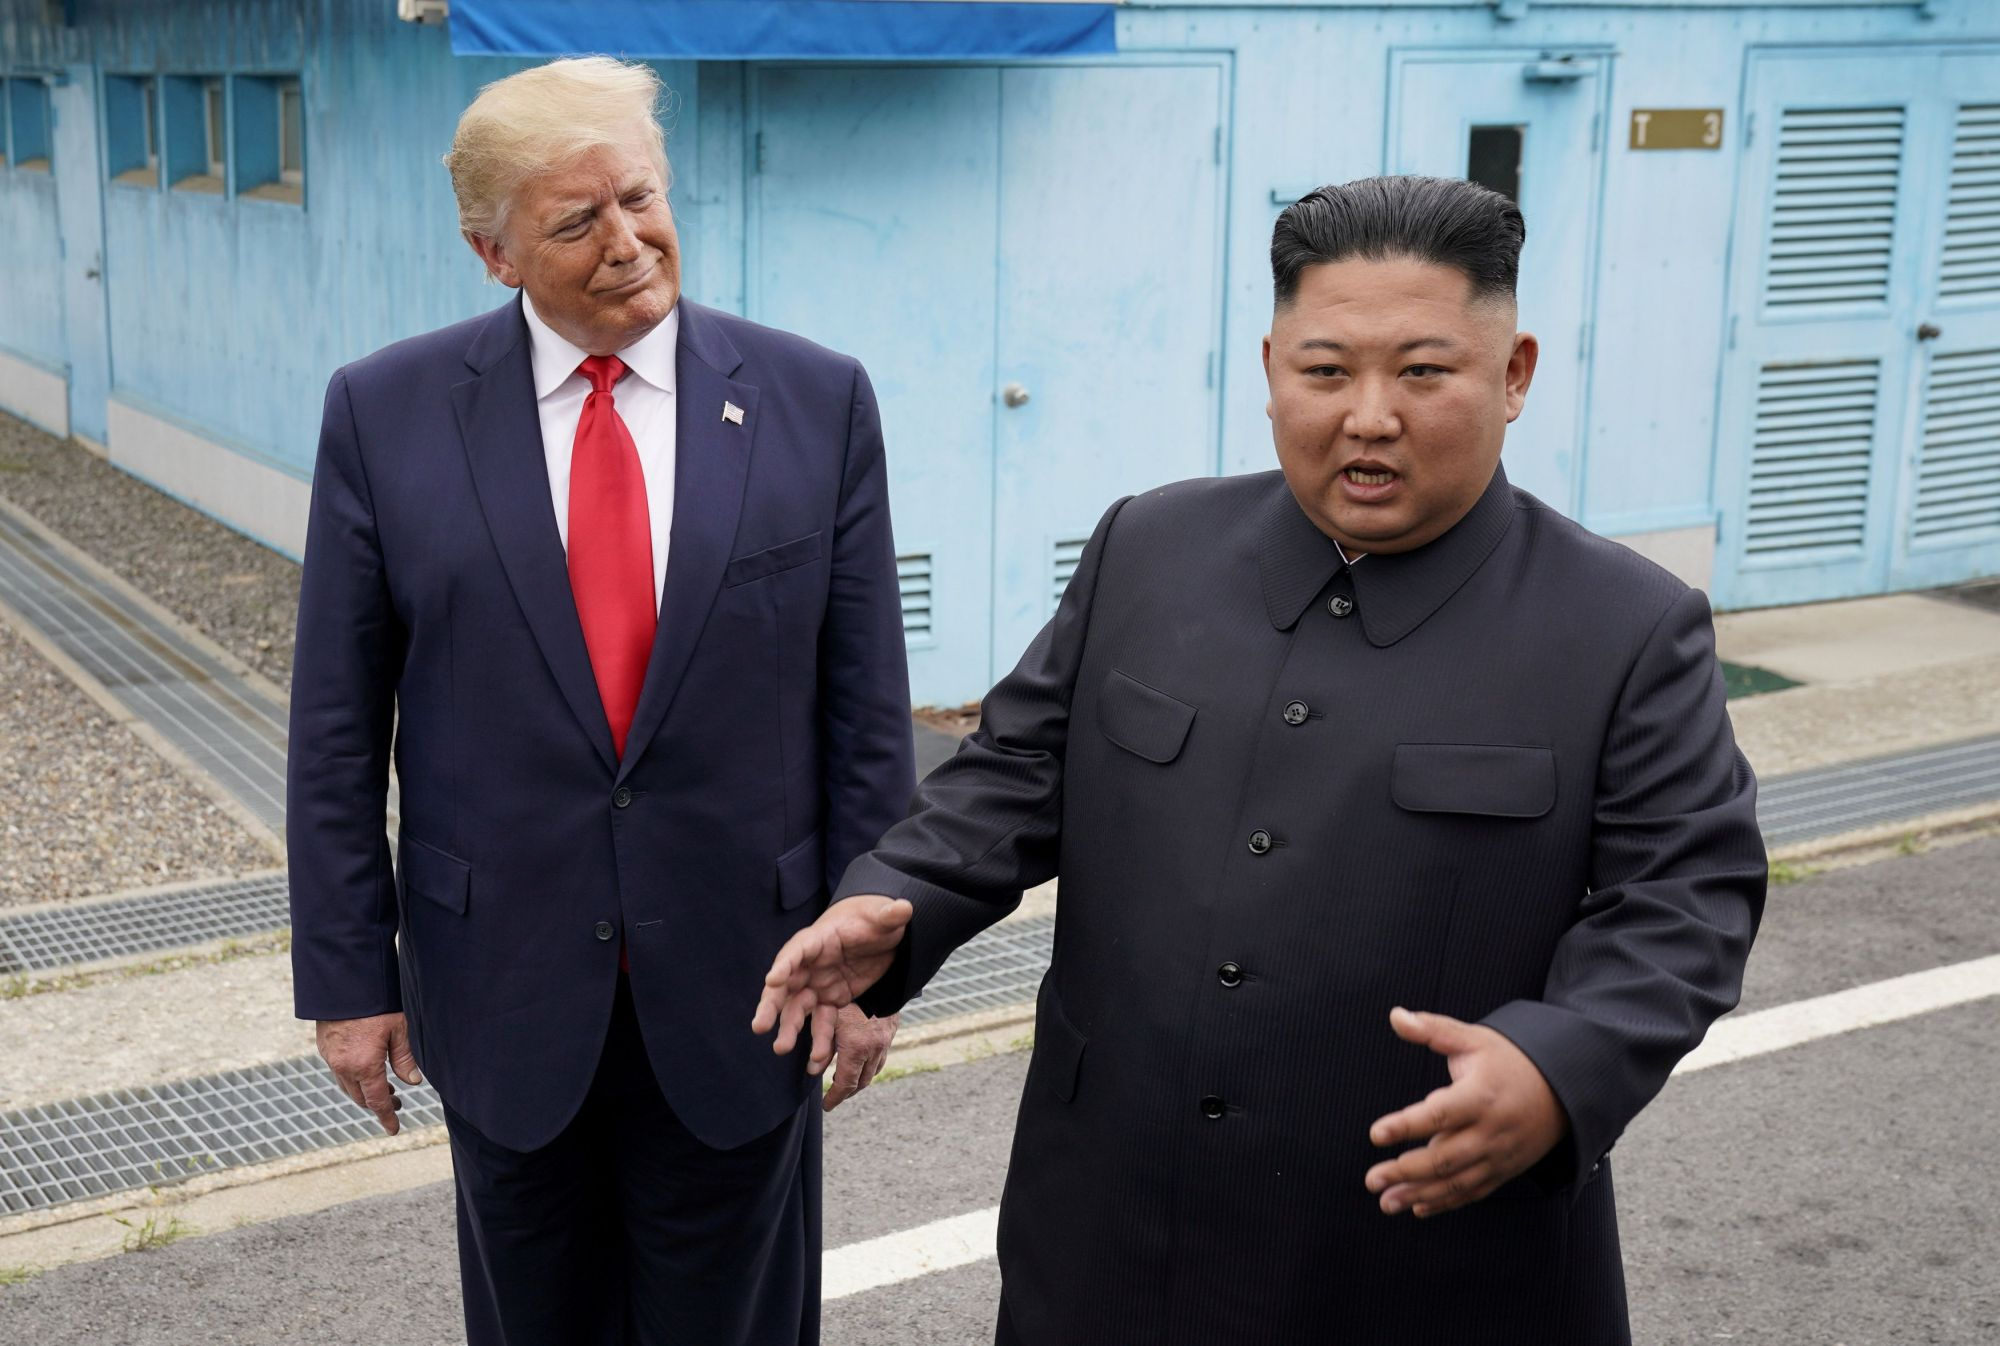 U.S. President Donald Trump meets with North Korean leader Kim Jong Un at the Demilitarized Zone separating the two Koreas, in Panmunjom, South Korea, on June 30. | REUTERS